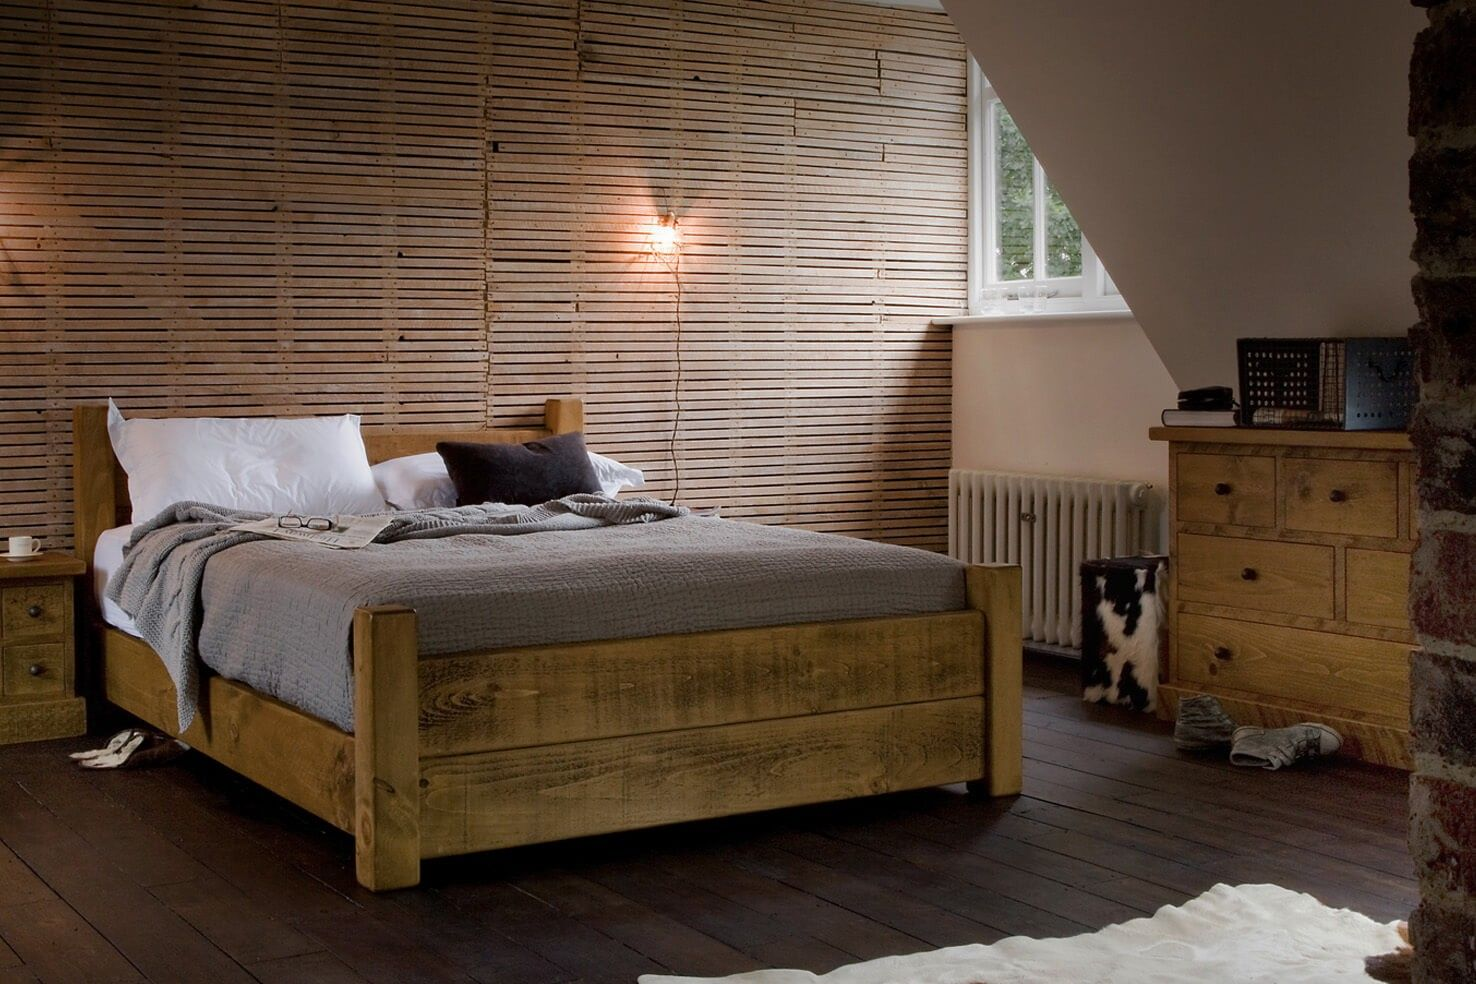 The Crofter S Plank Bed